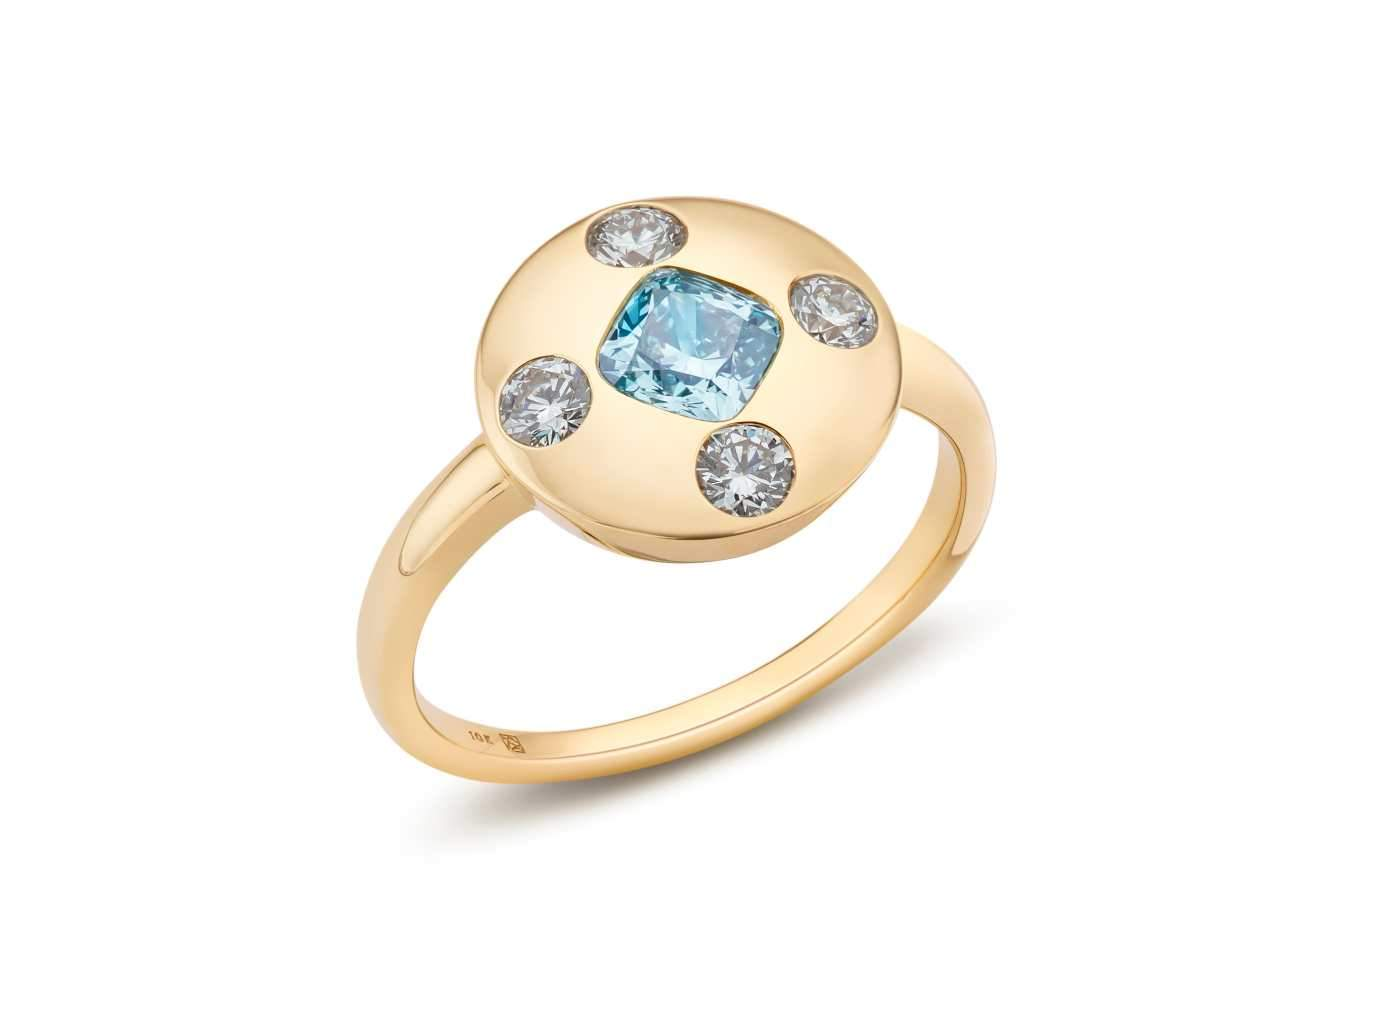 Side view of Muli Stone Signet Ring with blue and white diamonds